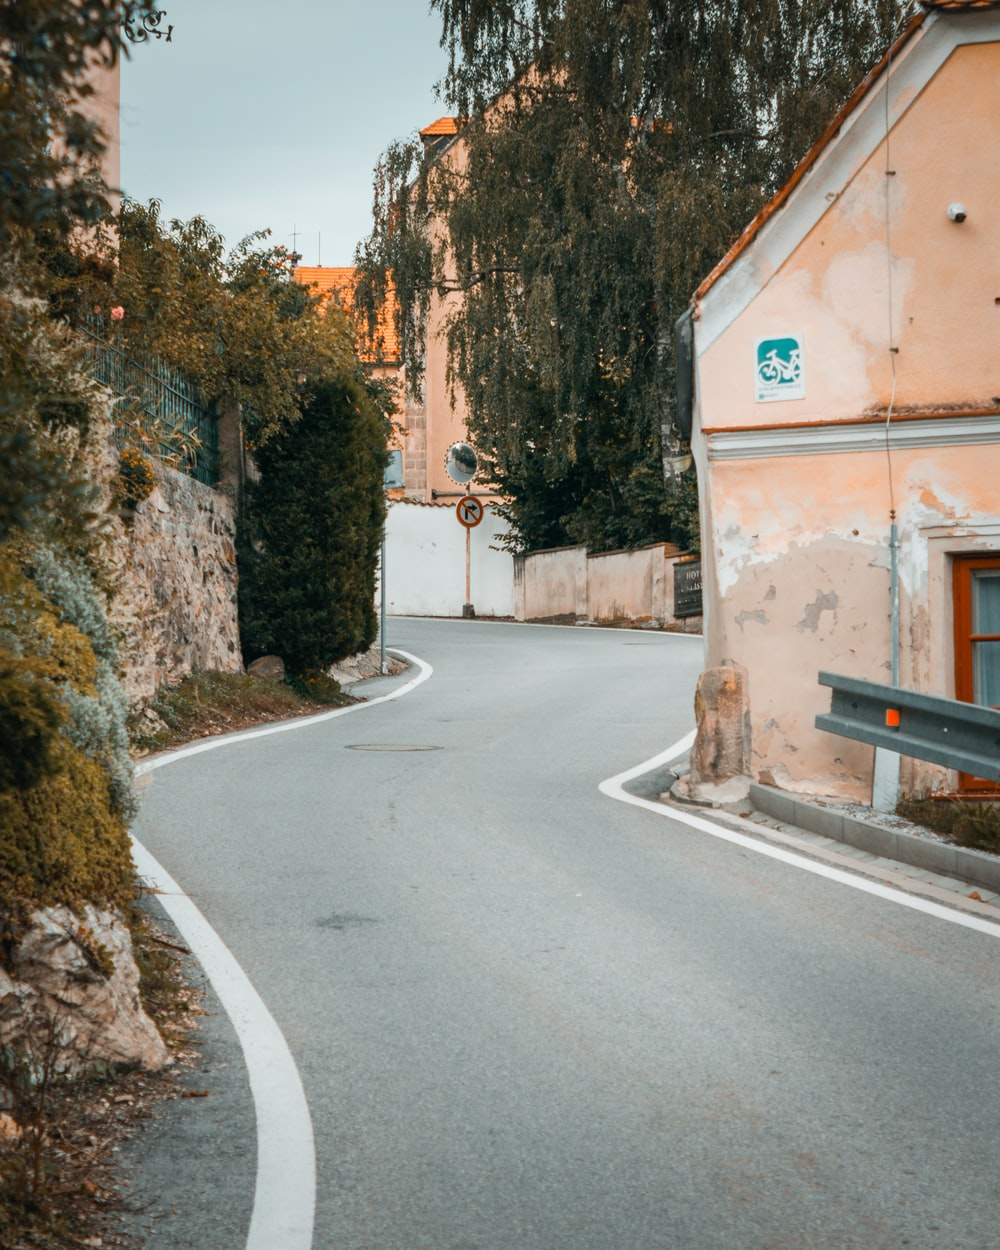 clear winding road during daytime